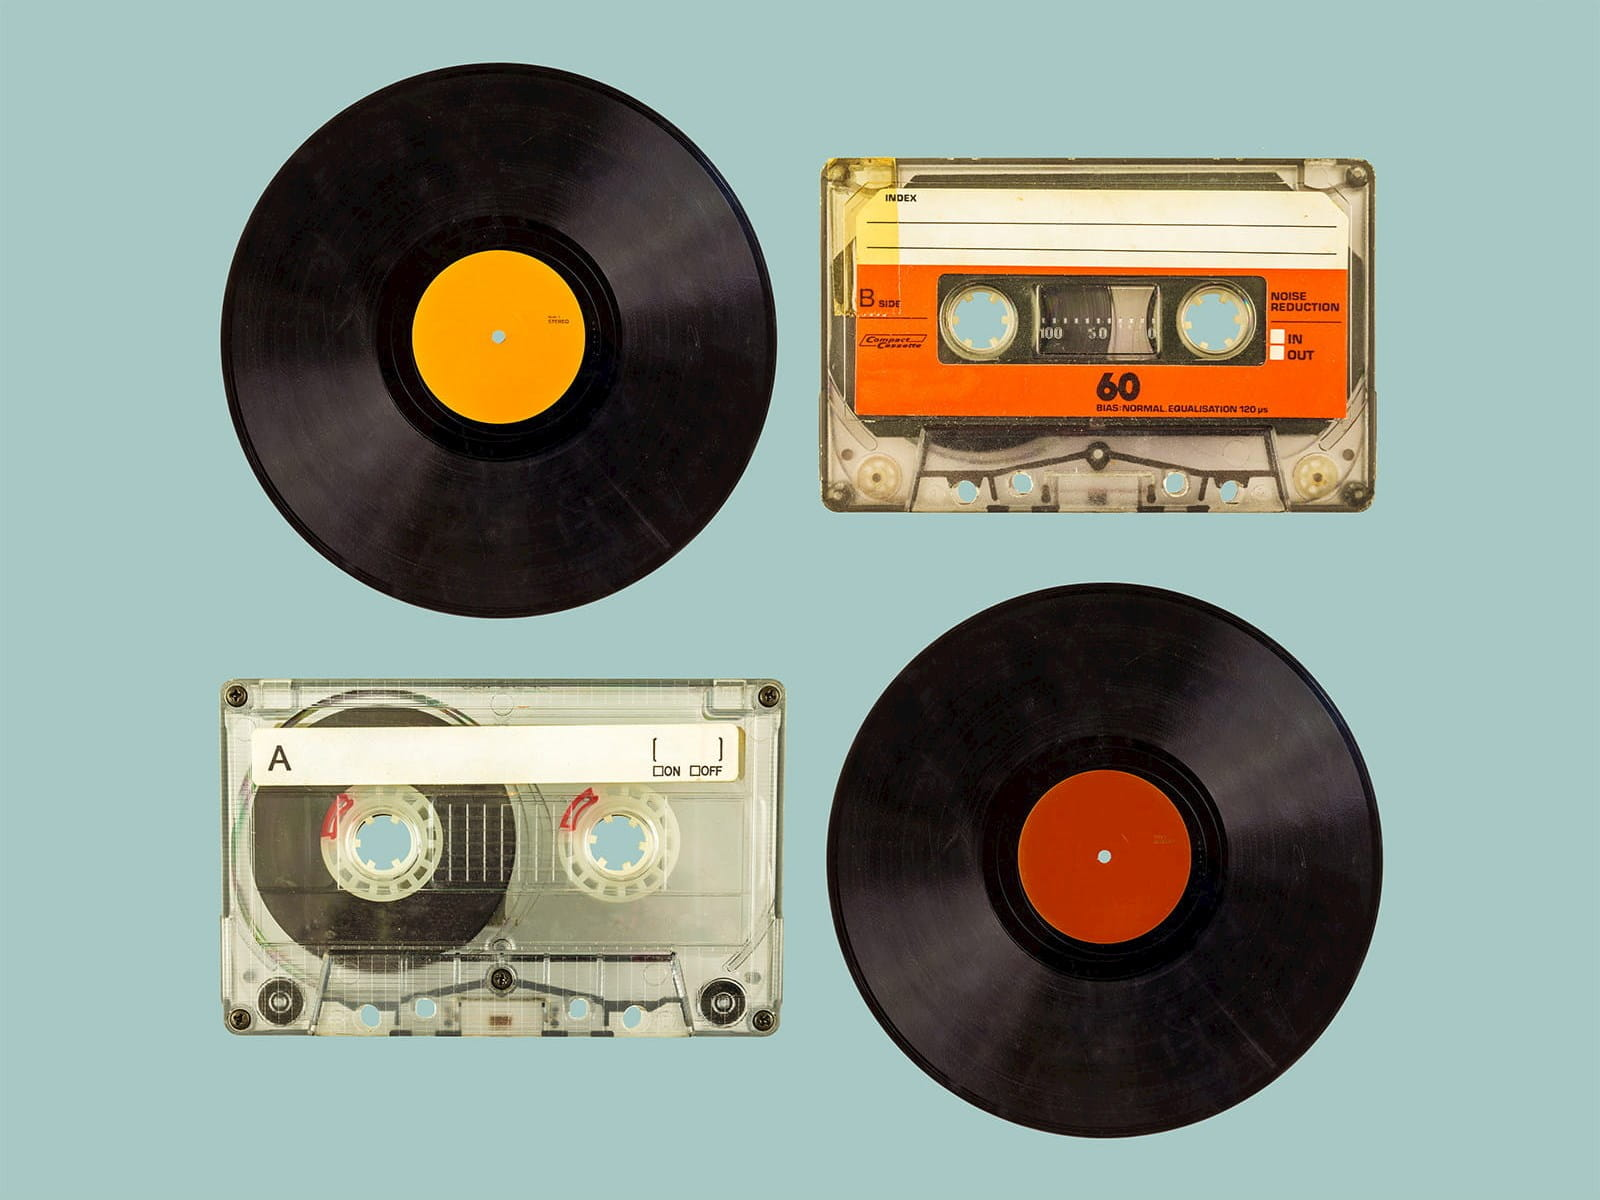 Vinyl LPs and cassette tapes